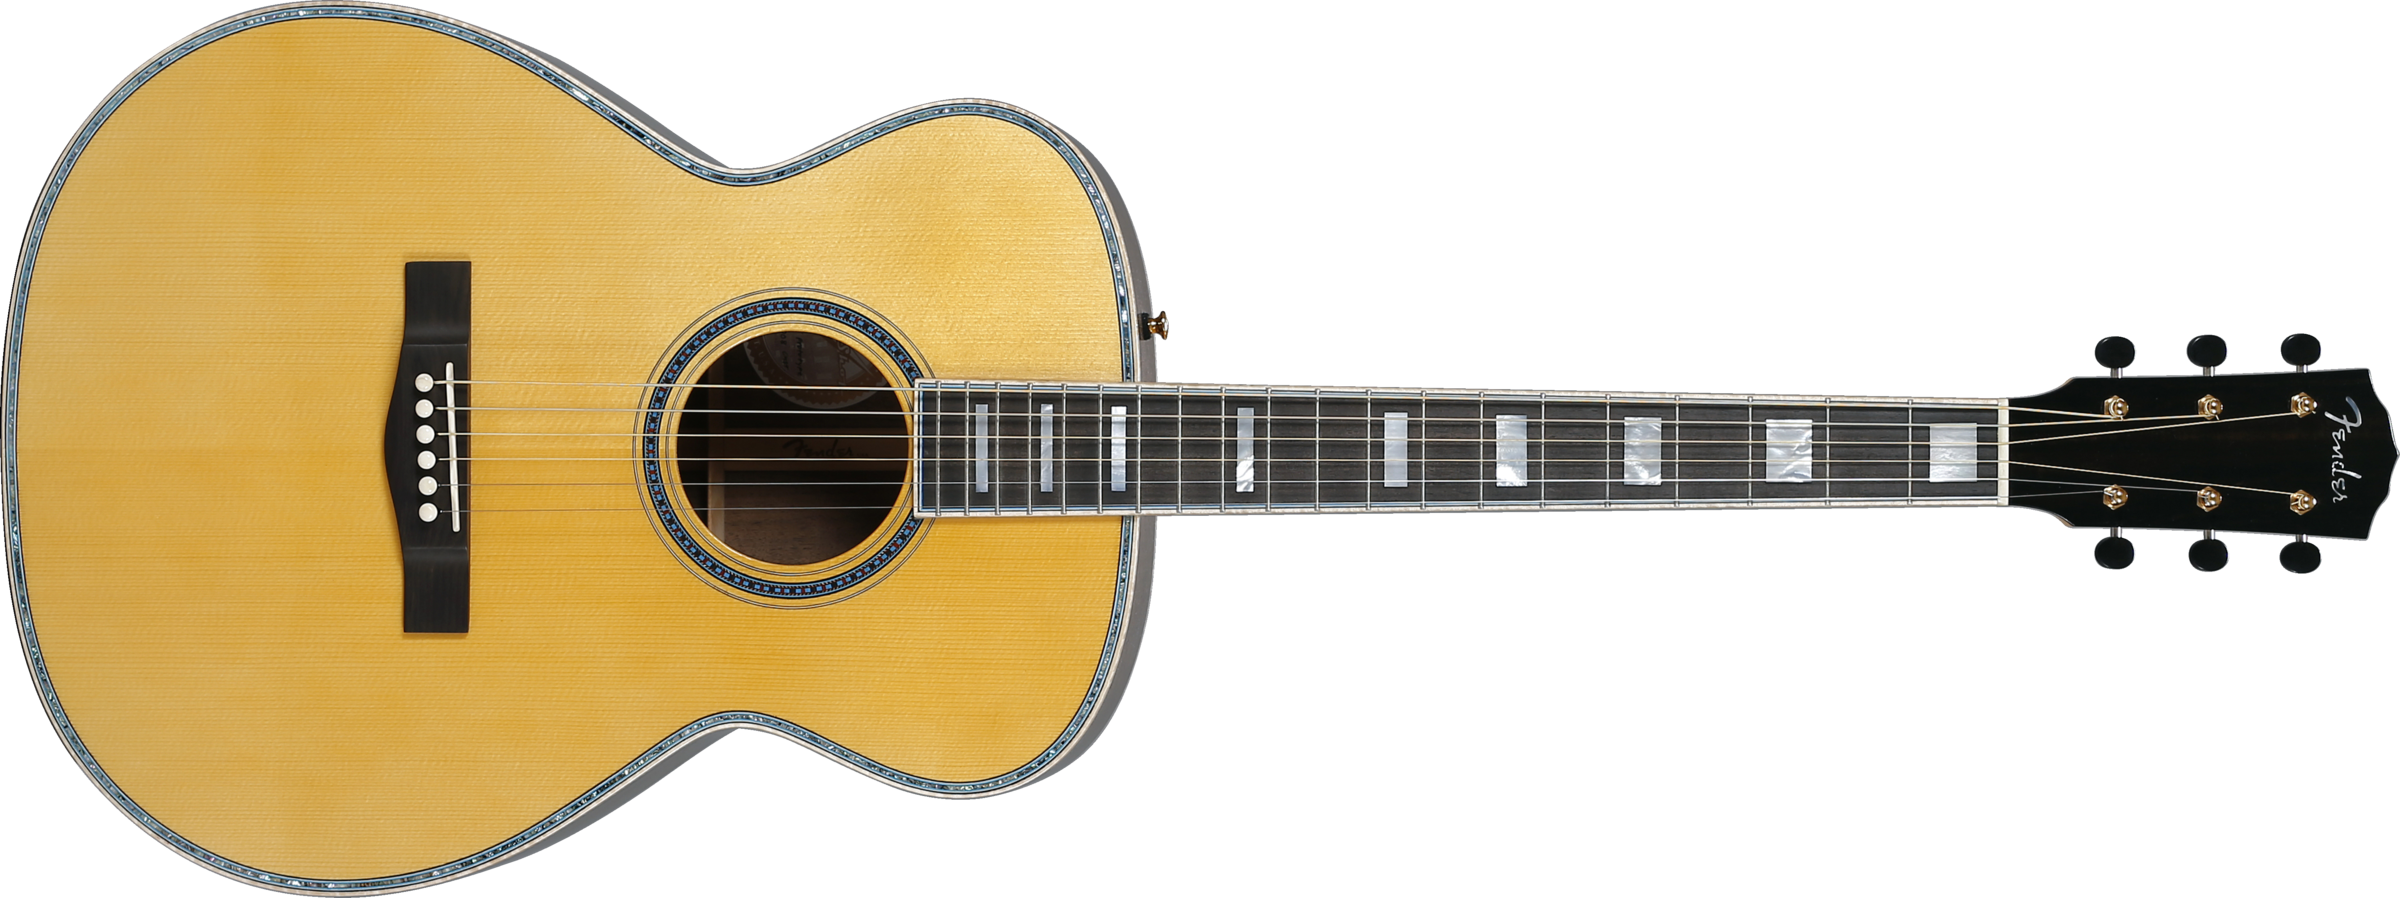 Pretty Remarkable Acoustic Guitar Png 26790